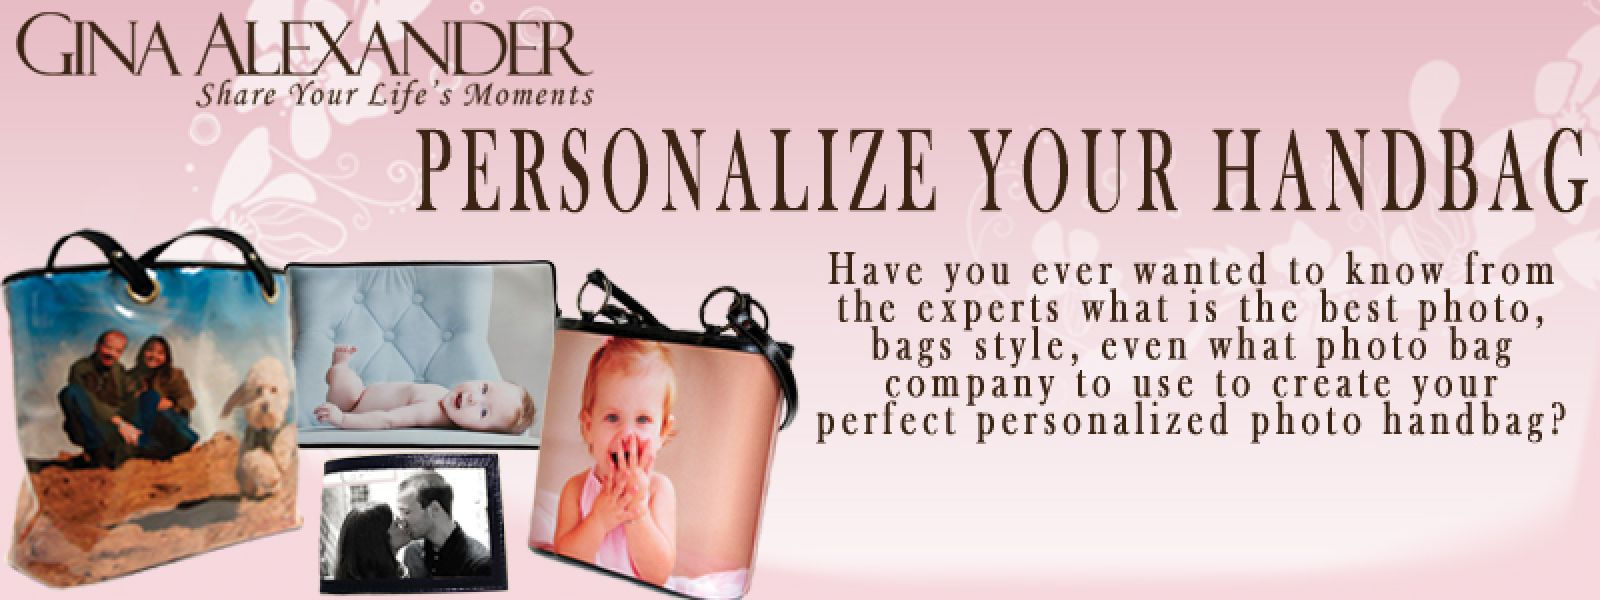 Personalize your Handbag by Gina Alexander